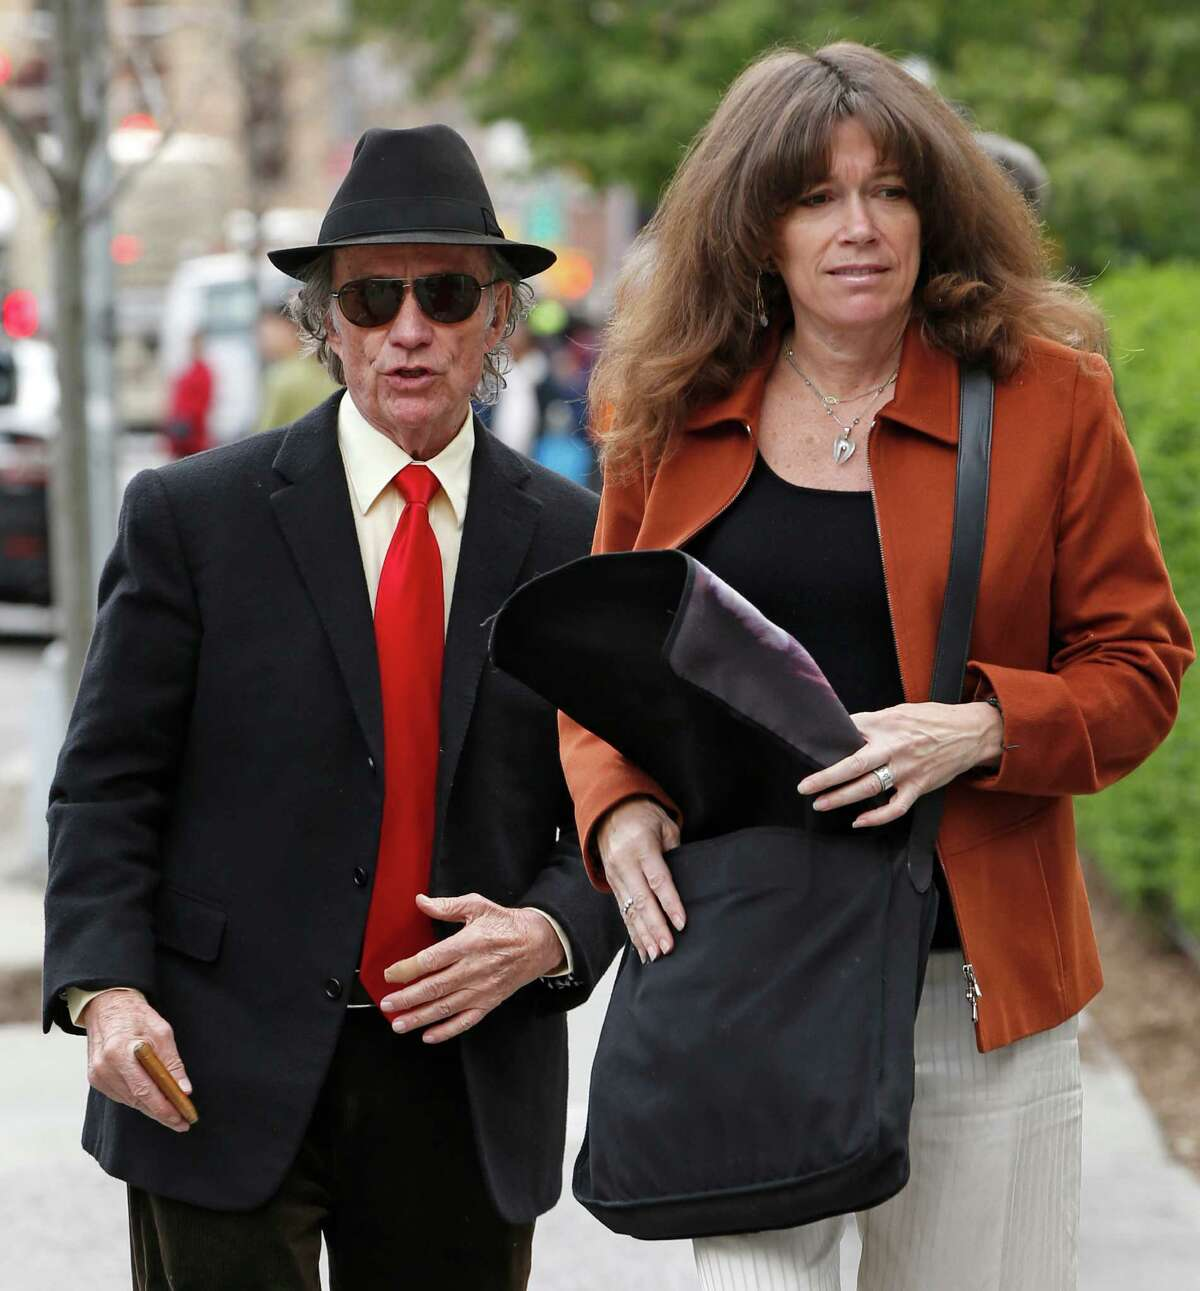 Texas entrepreneur Sam Wyly, left, and his wife, Cheryl, head into U.S. District Court in Manhattan, Tuesday, May 6, 2014, in New York, for closing arguments in the civil trial of Wyly and his late brother Charles. The pair are accused of earning more than $500 million through fraud and deception by secretly trading the securities of public companies they controlled. (AP Photo/Kathy Willens)